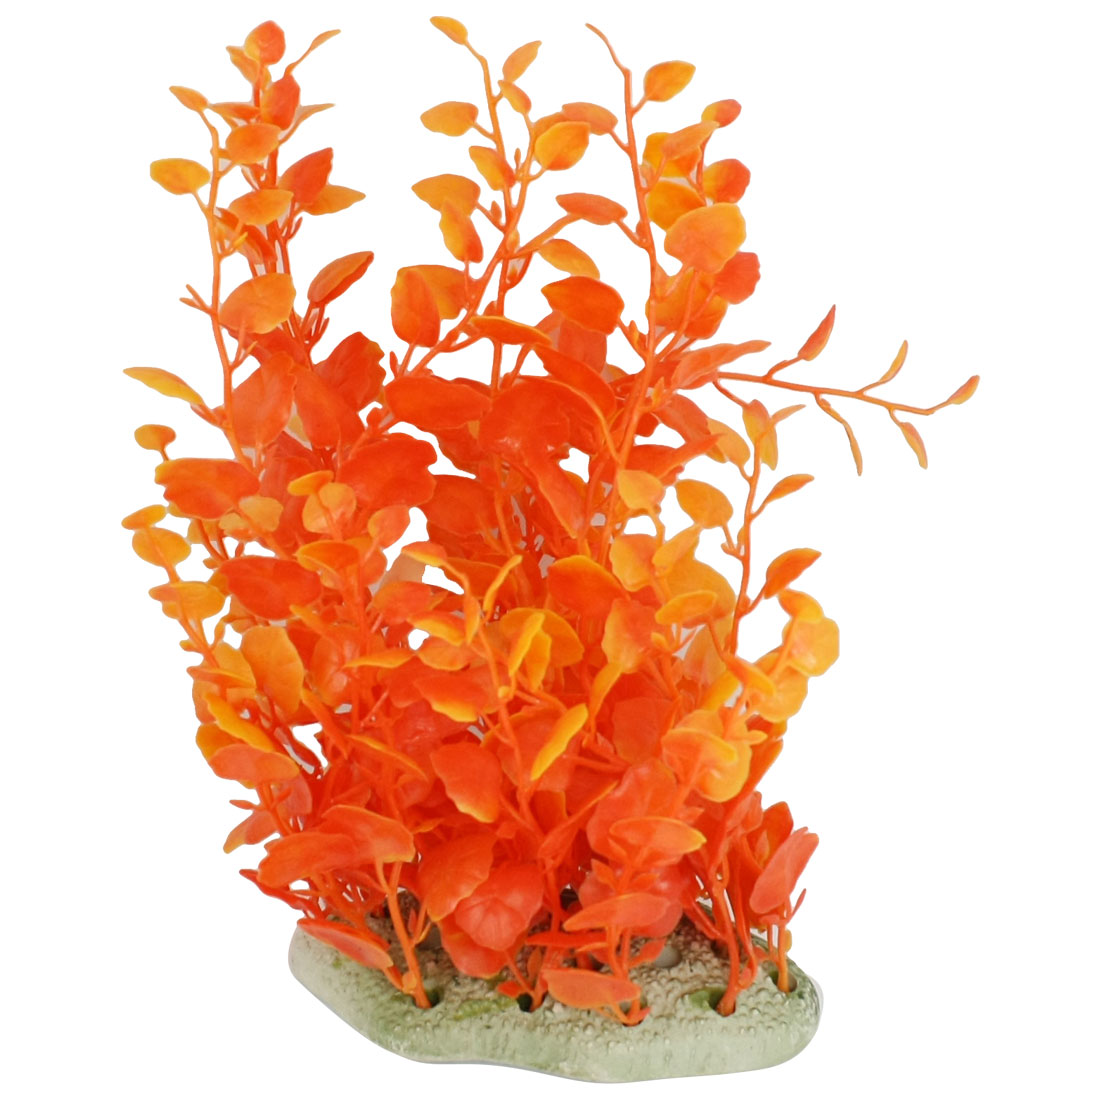 "Ceramic Base Orange Plastic Water Plants 7.9"" Hight for Fish Tank Ornament"